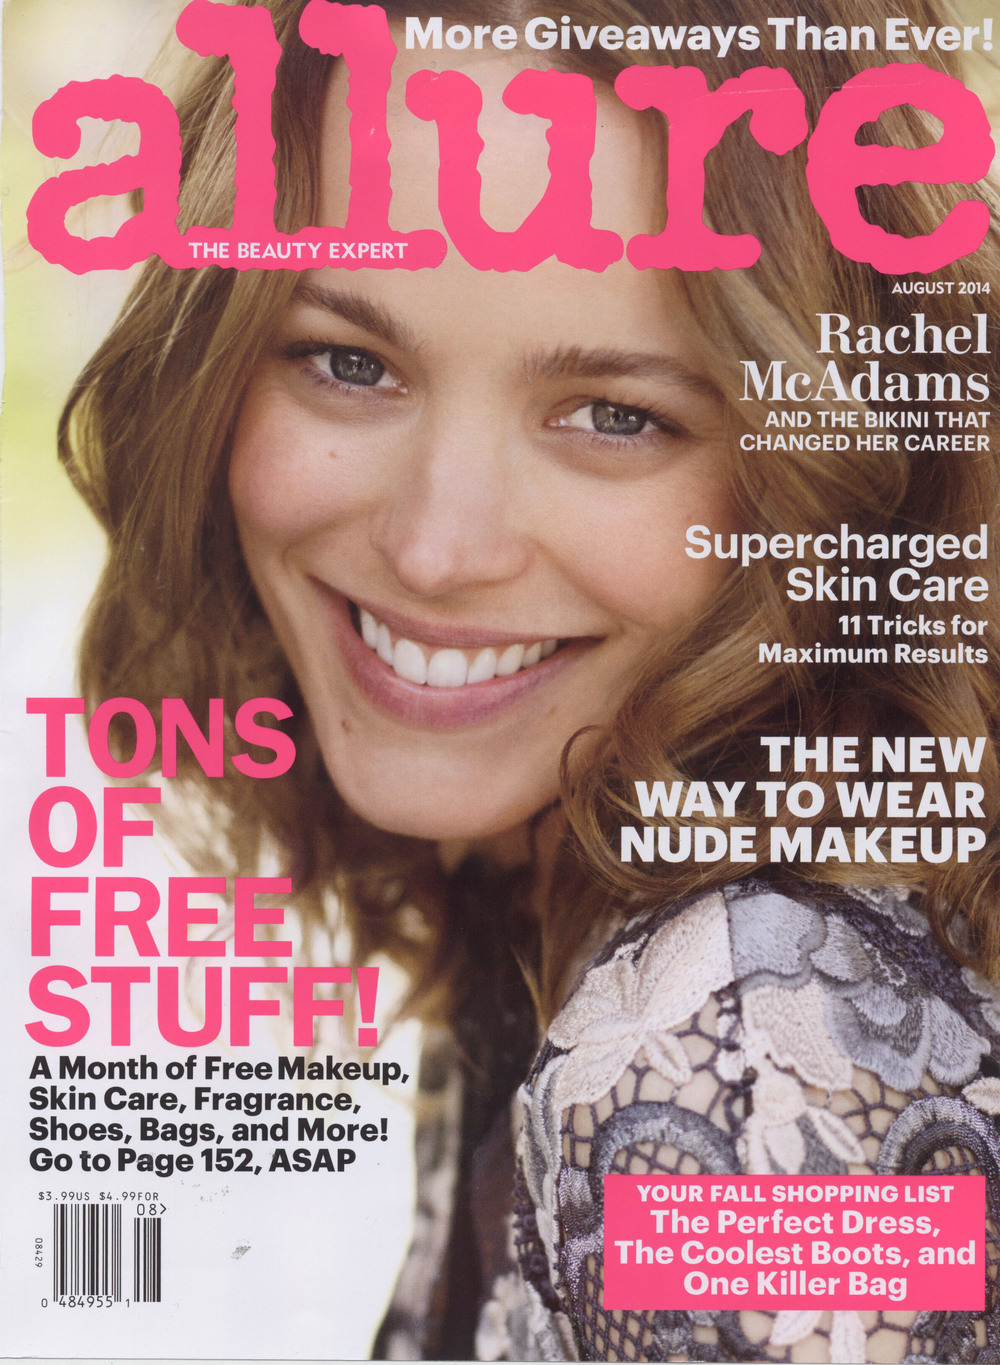 Allure_AugustCover_HiRes.jpg